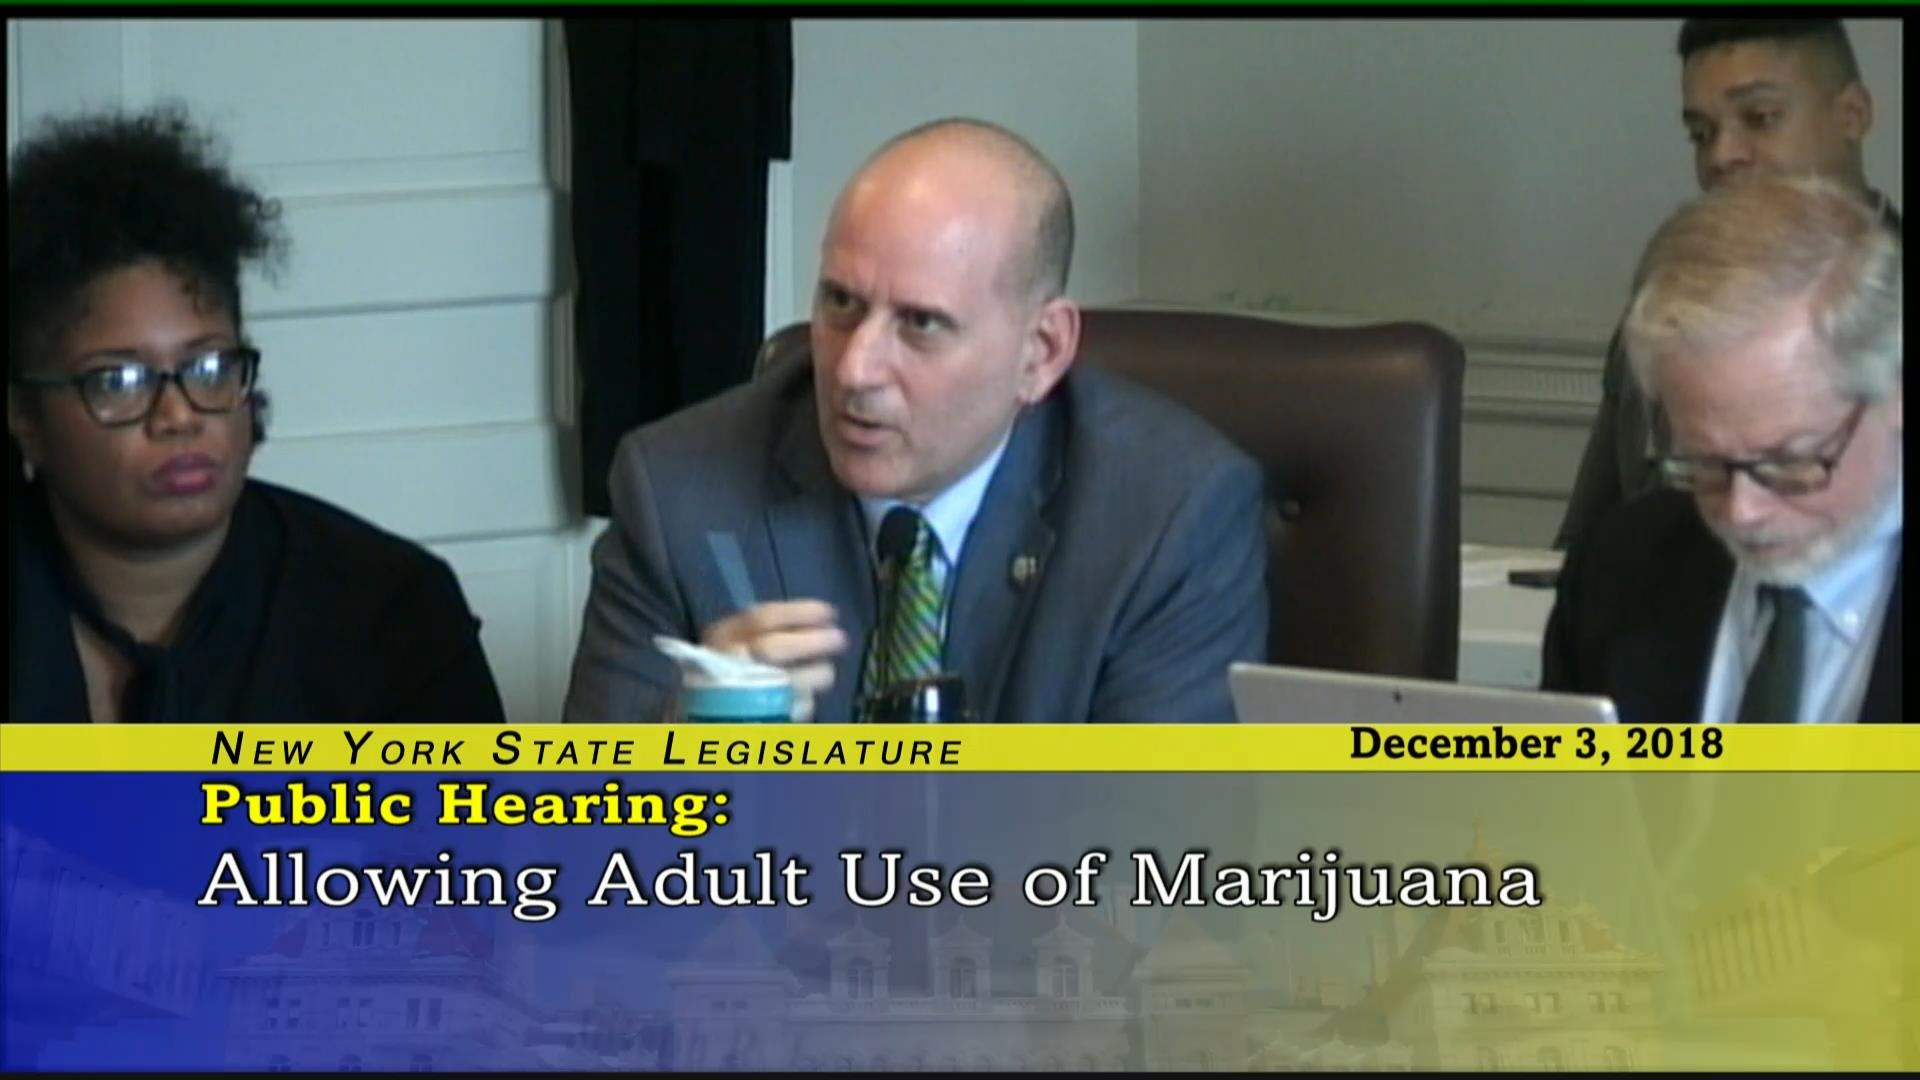 Epstein Discusses Age Of Legalization